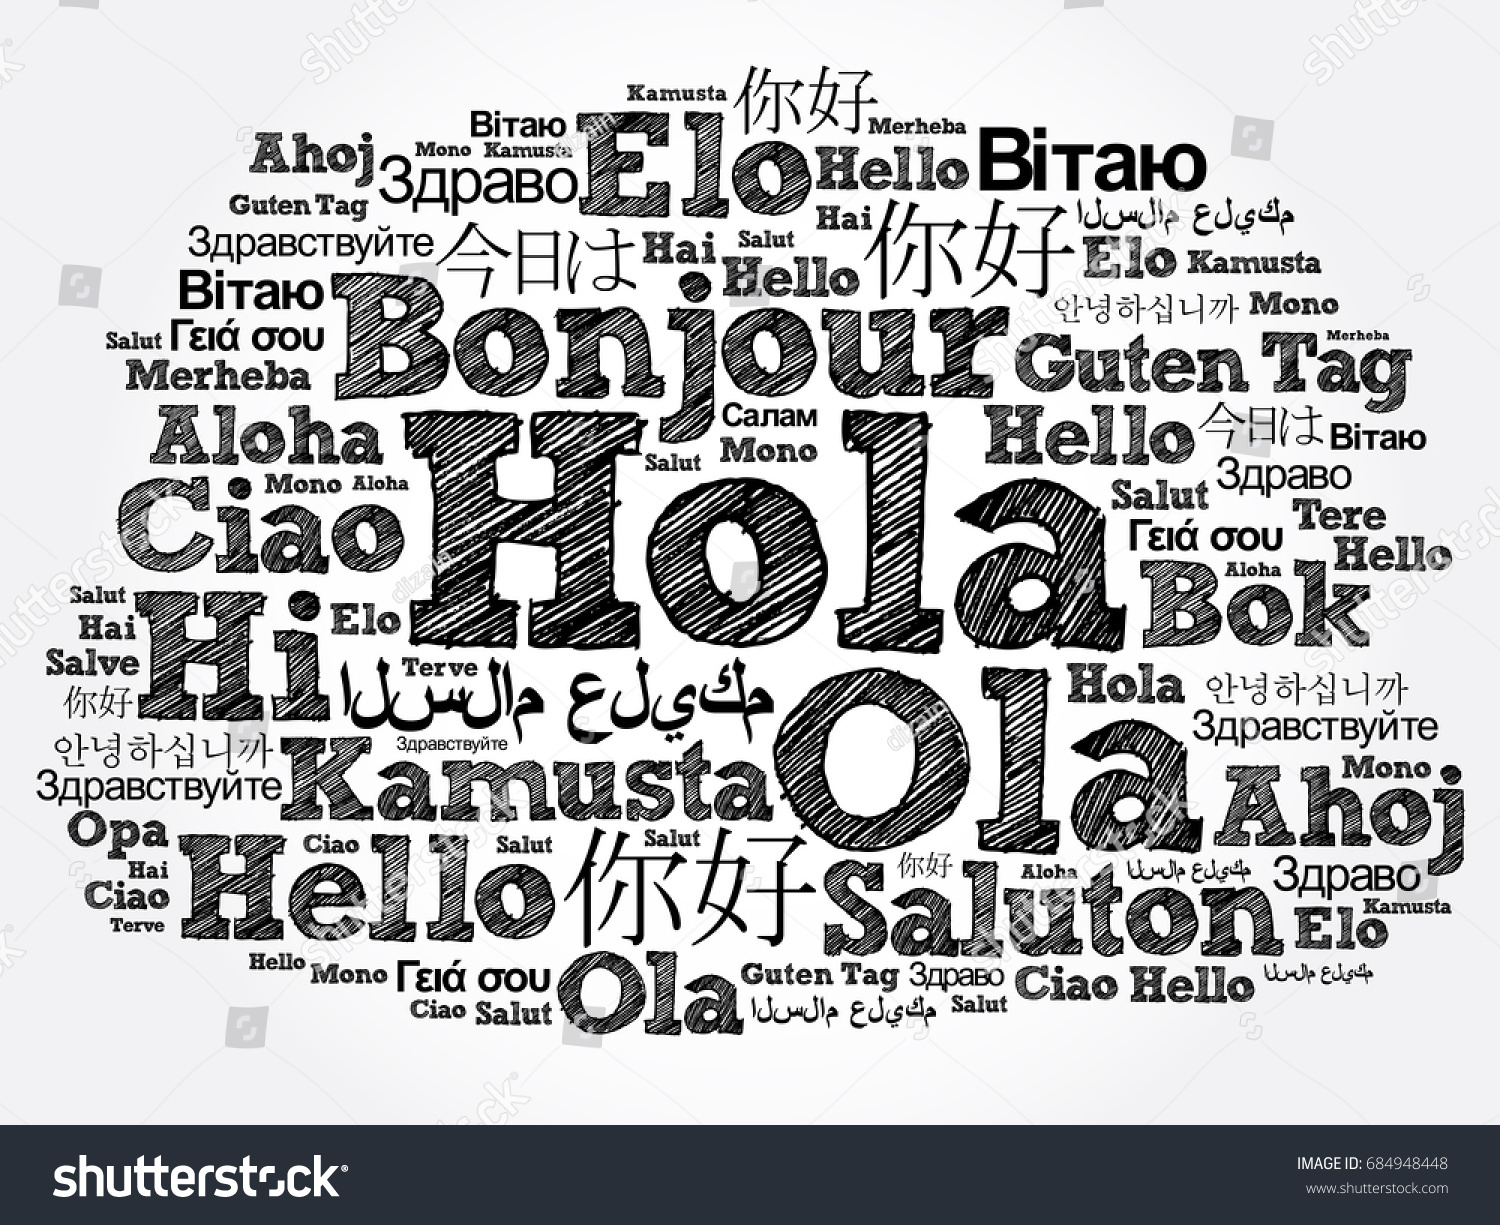 Hola hello greeting spanish word cloud stock illustration hola hello greeting in spanish word cloud in different languages of the world kristyandbryce Image collections